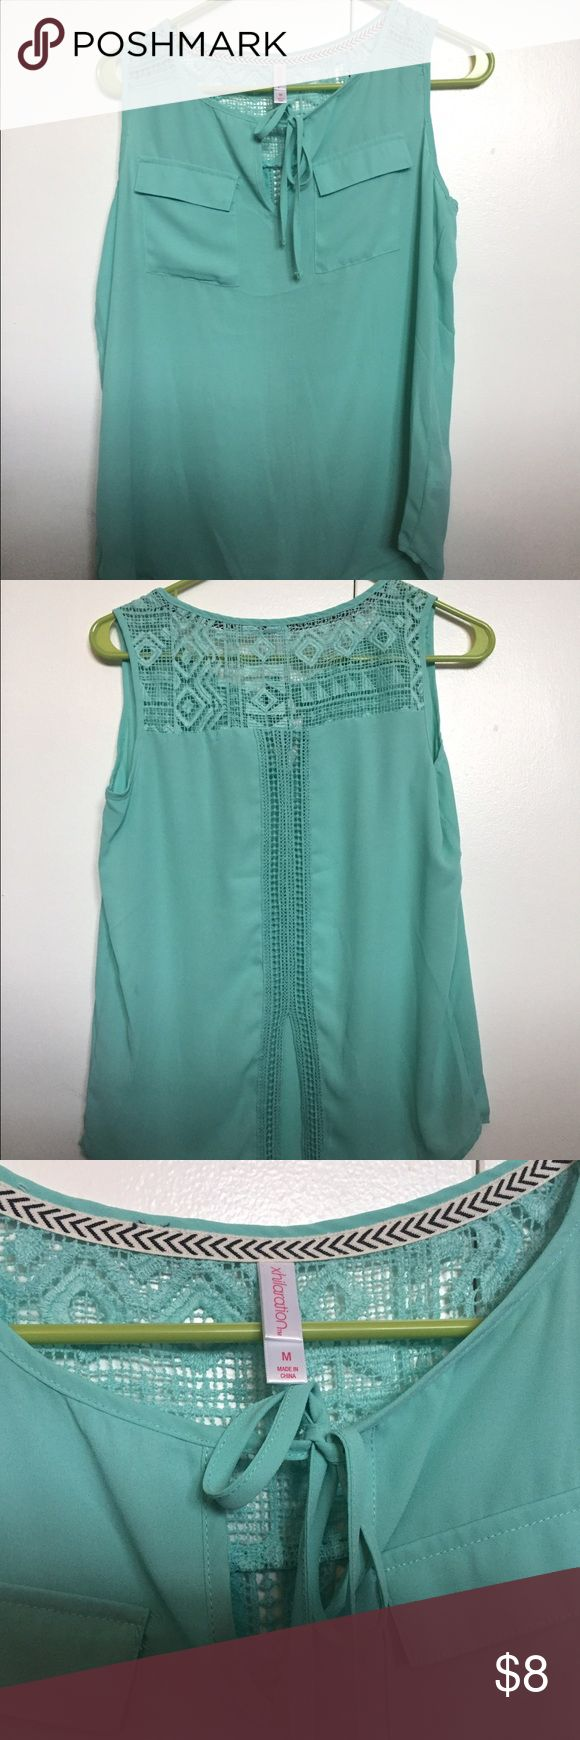 Mint green sleeveless top with lace back Medium xhilaration top from Target.  Mint green in color with lace detail on back. 100% polyester. Xhilaration Tops Blouses